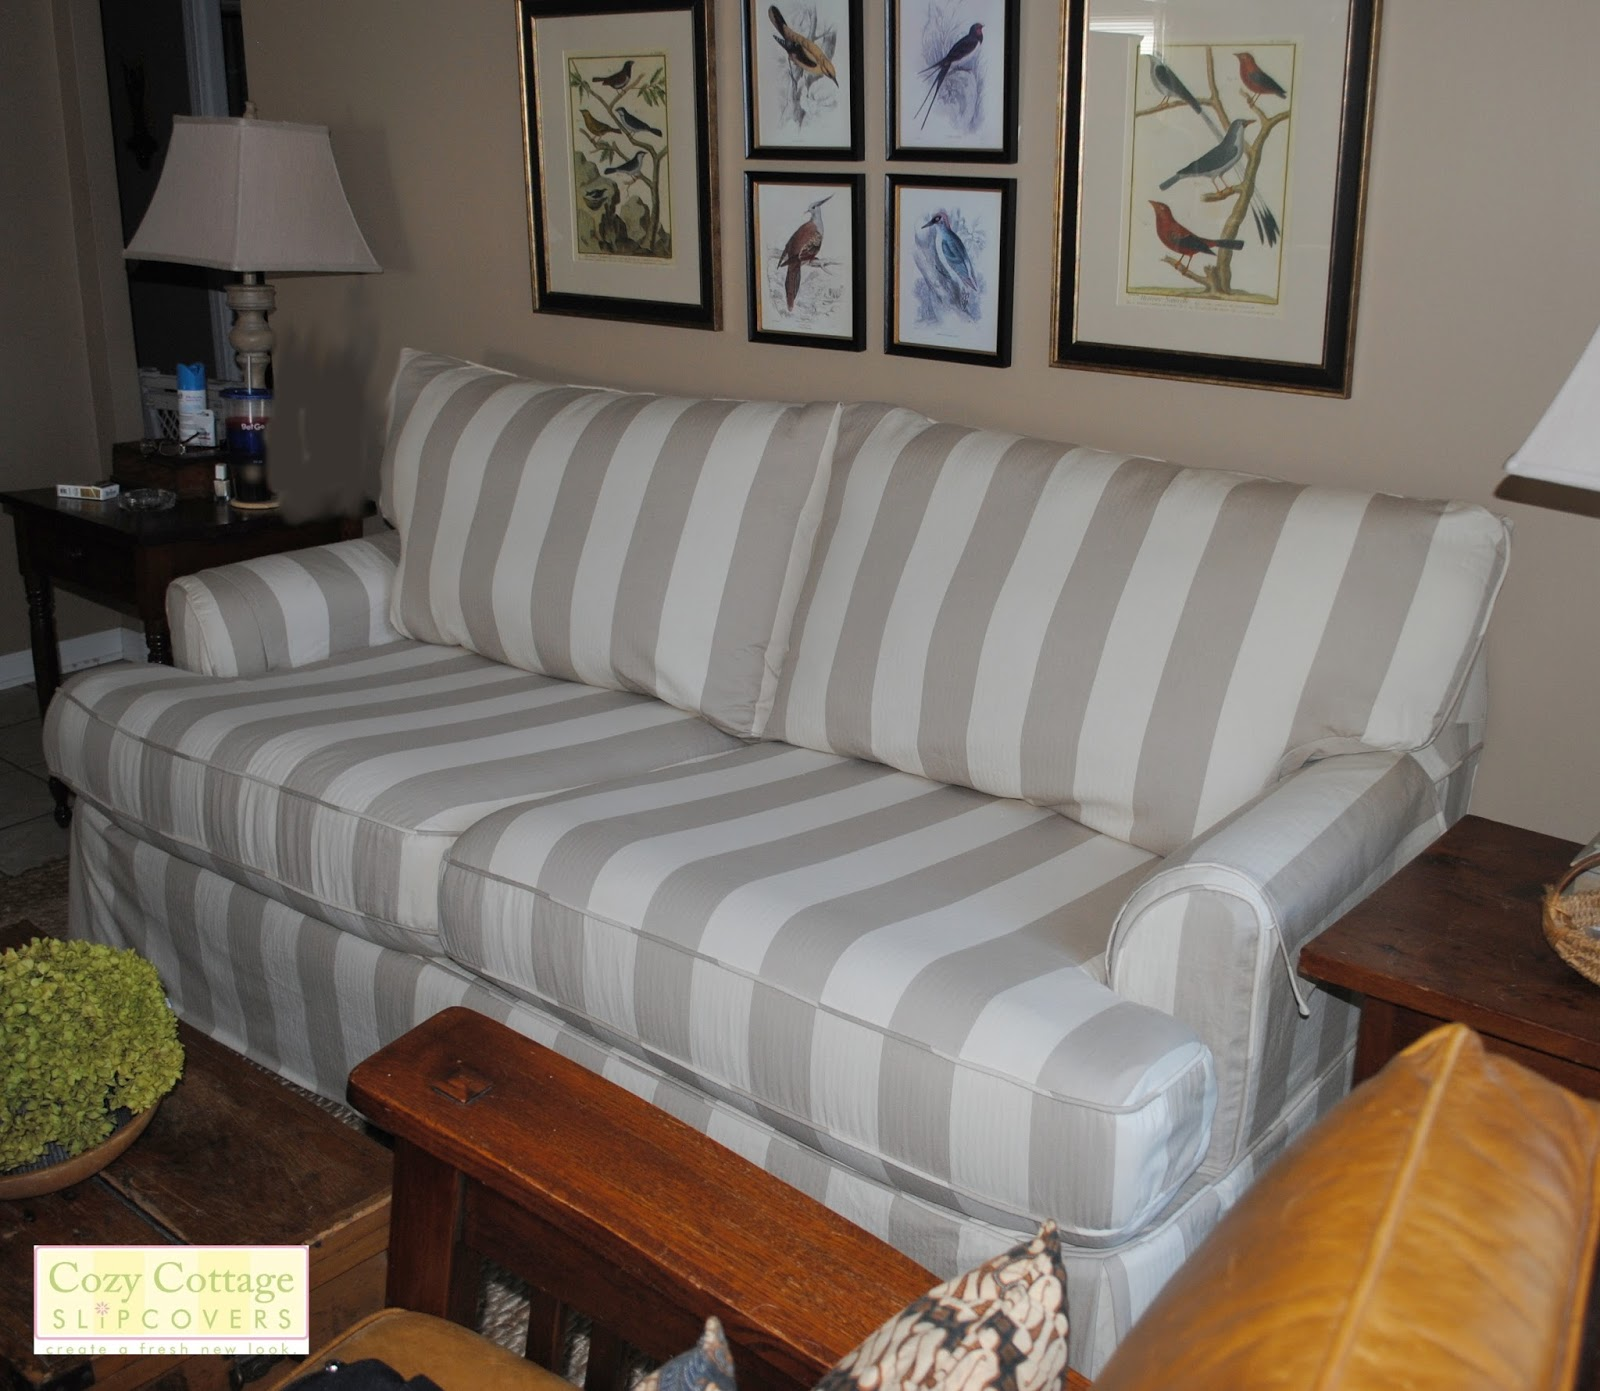 Furniture Covers To Protect From Dogs